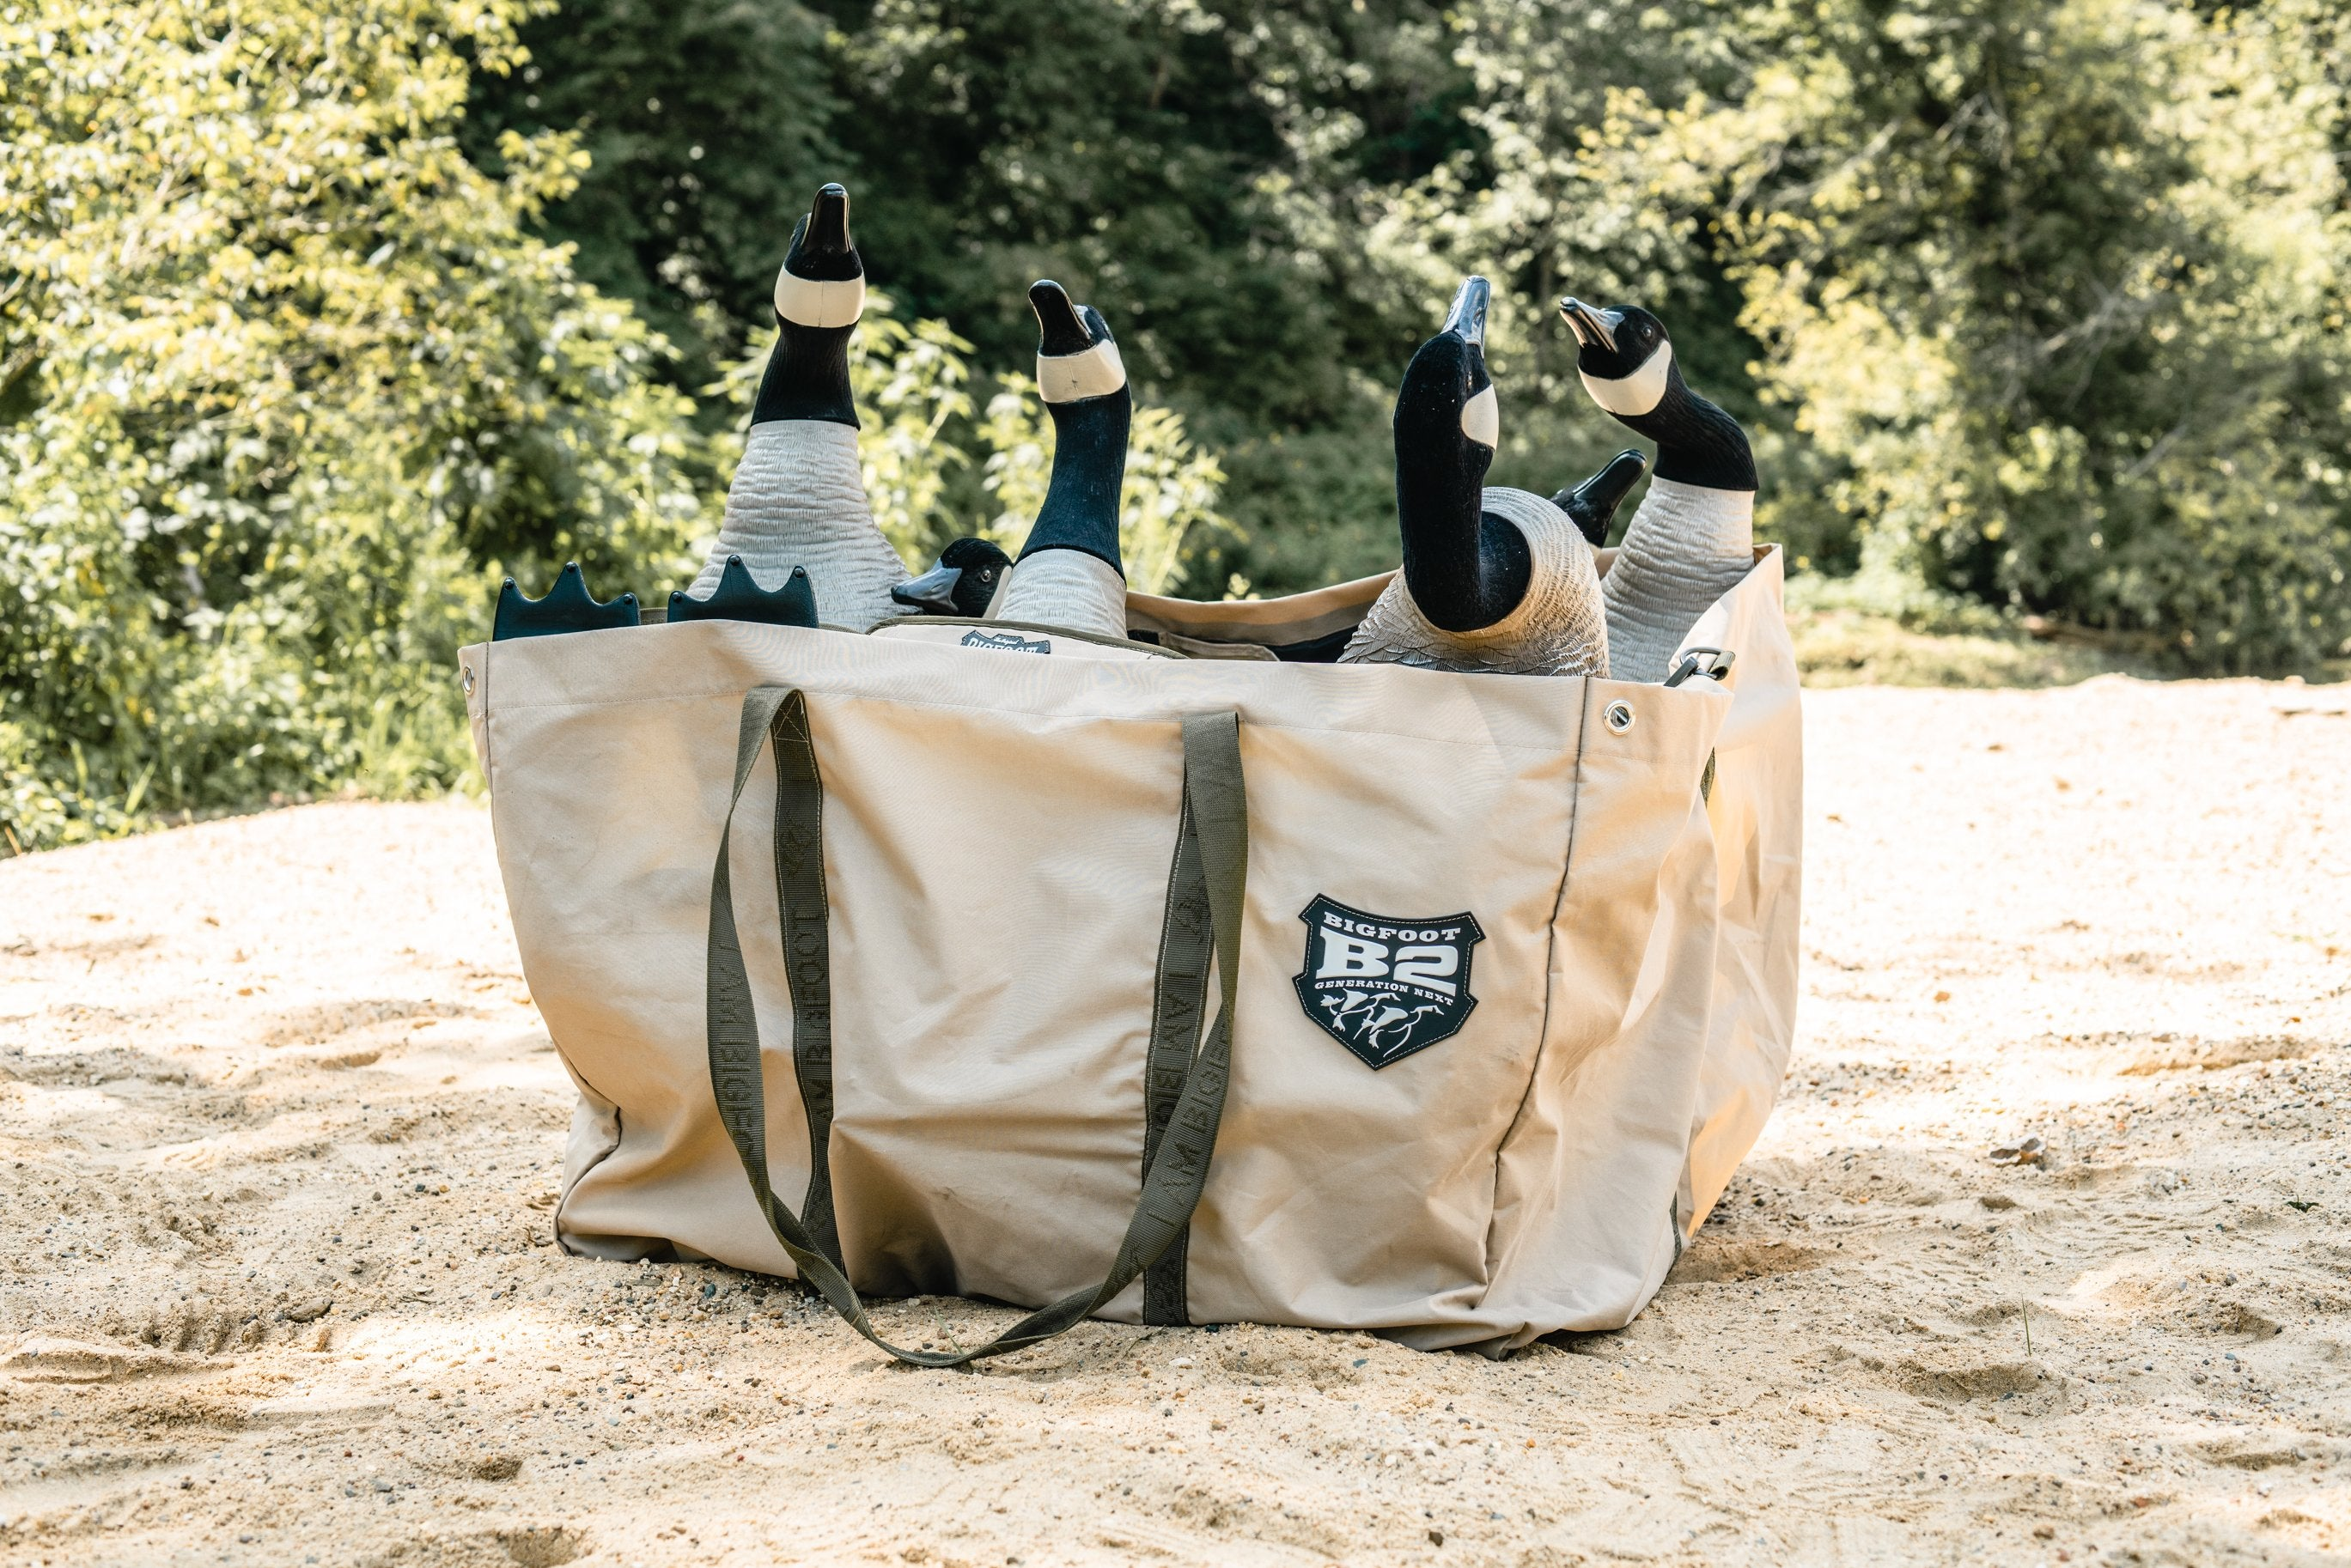 B2 6-Slot Decoy Bag with B2™ Fully Flocked Variety Goose Decoys 6 Pk.